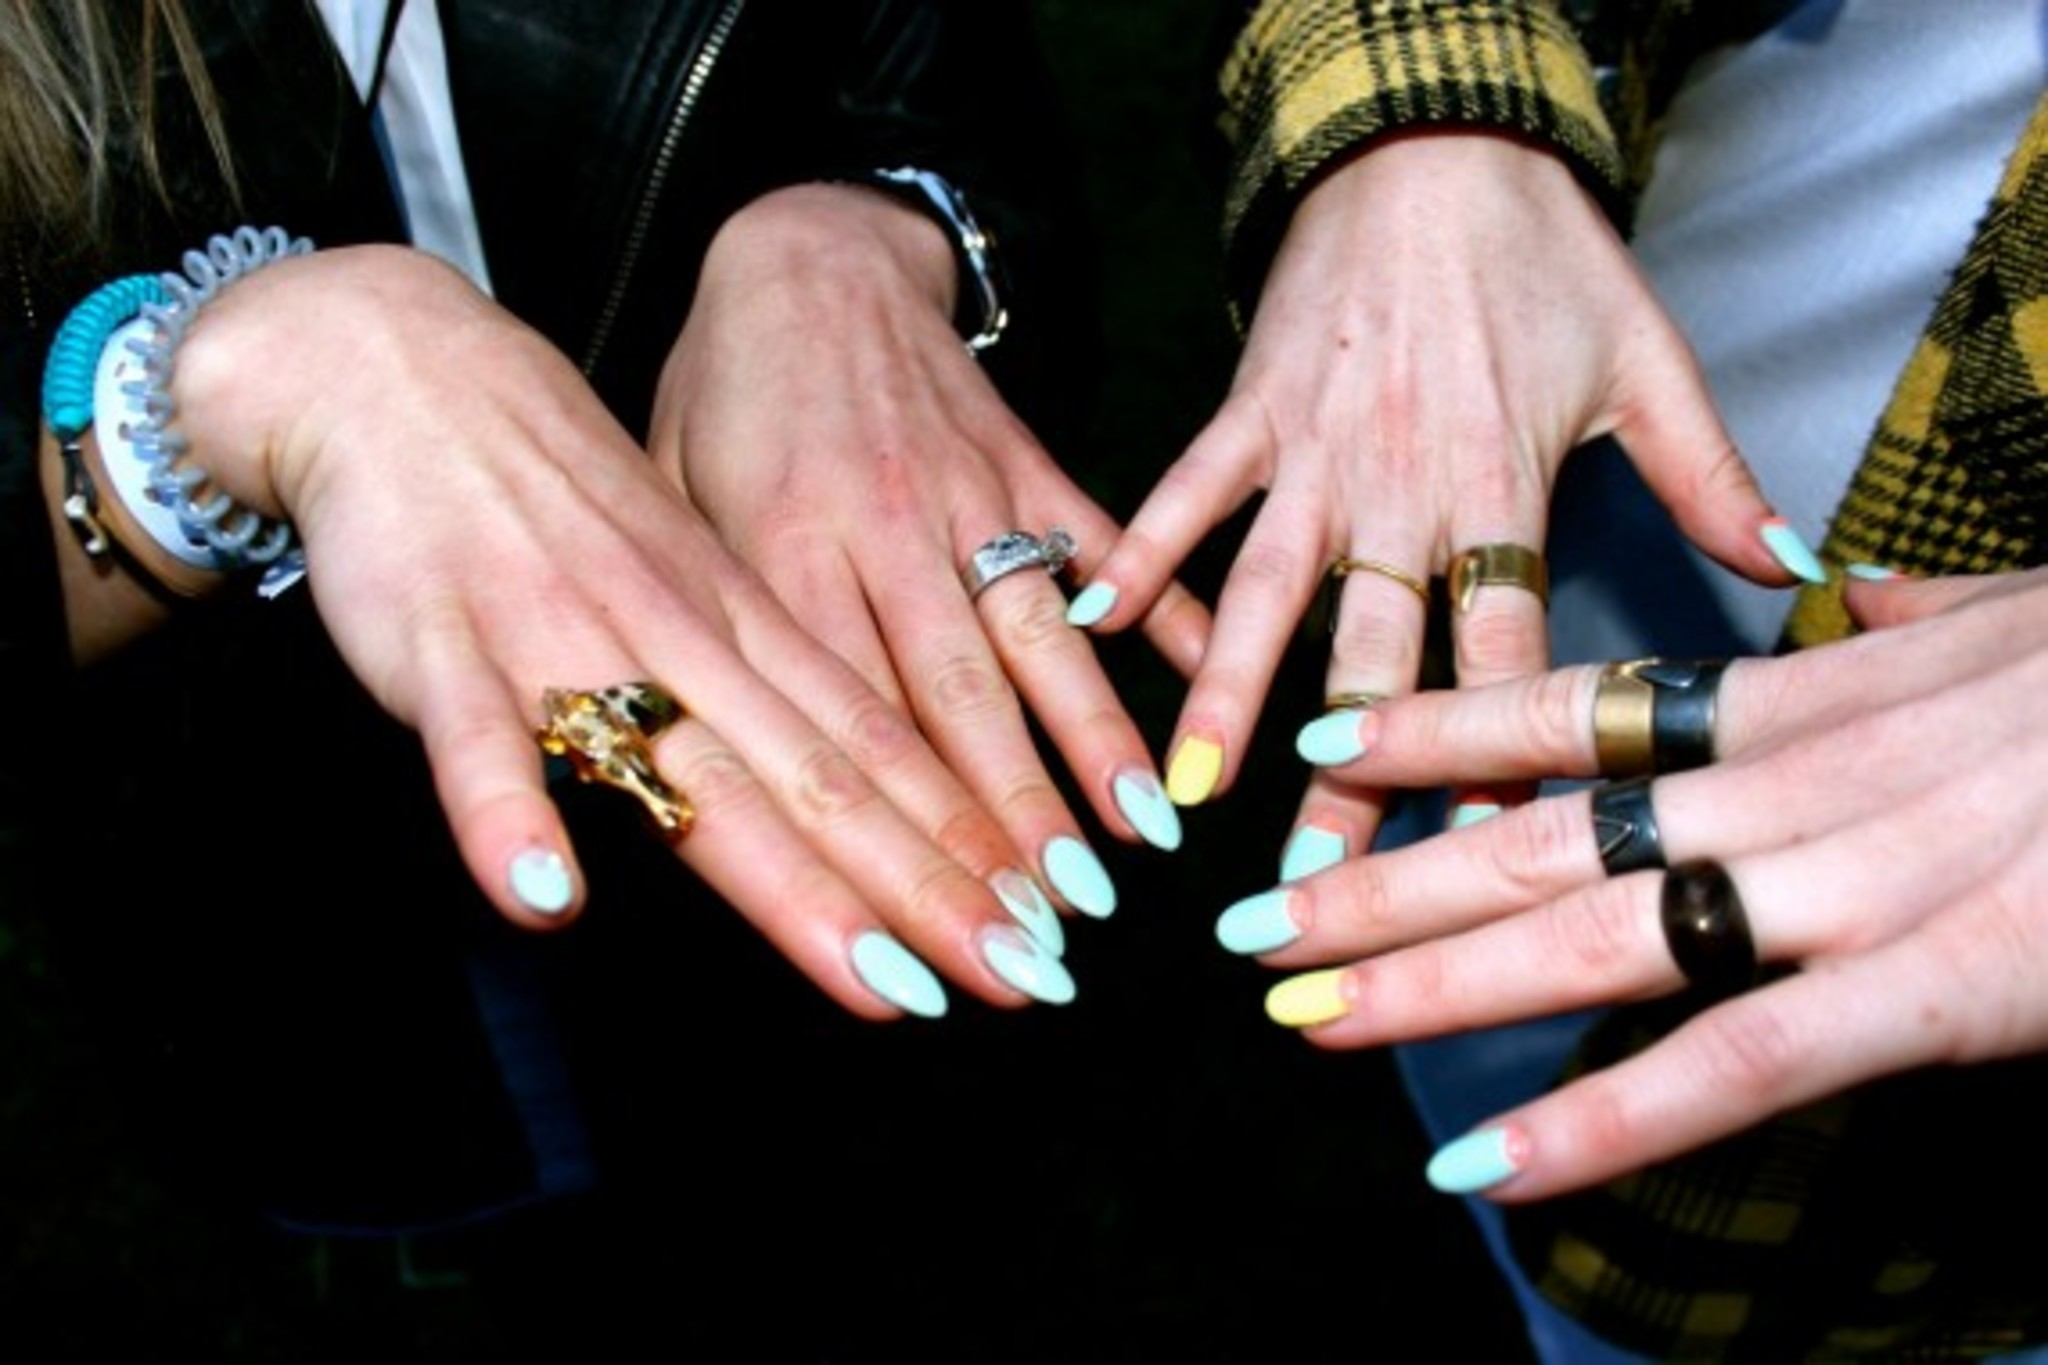 S&M nails!